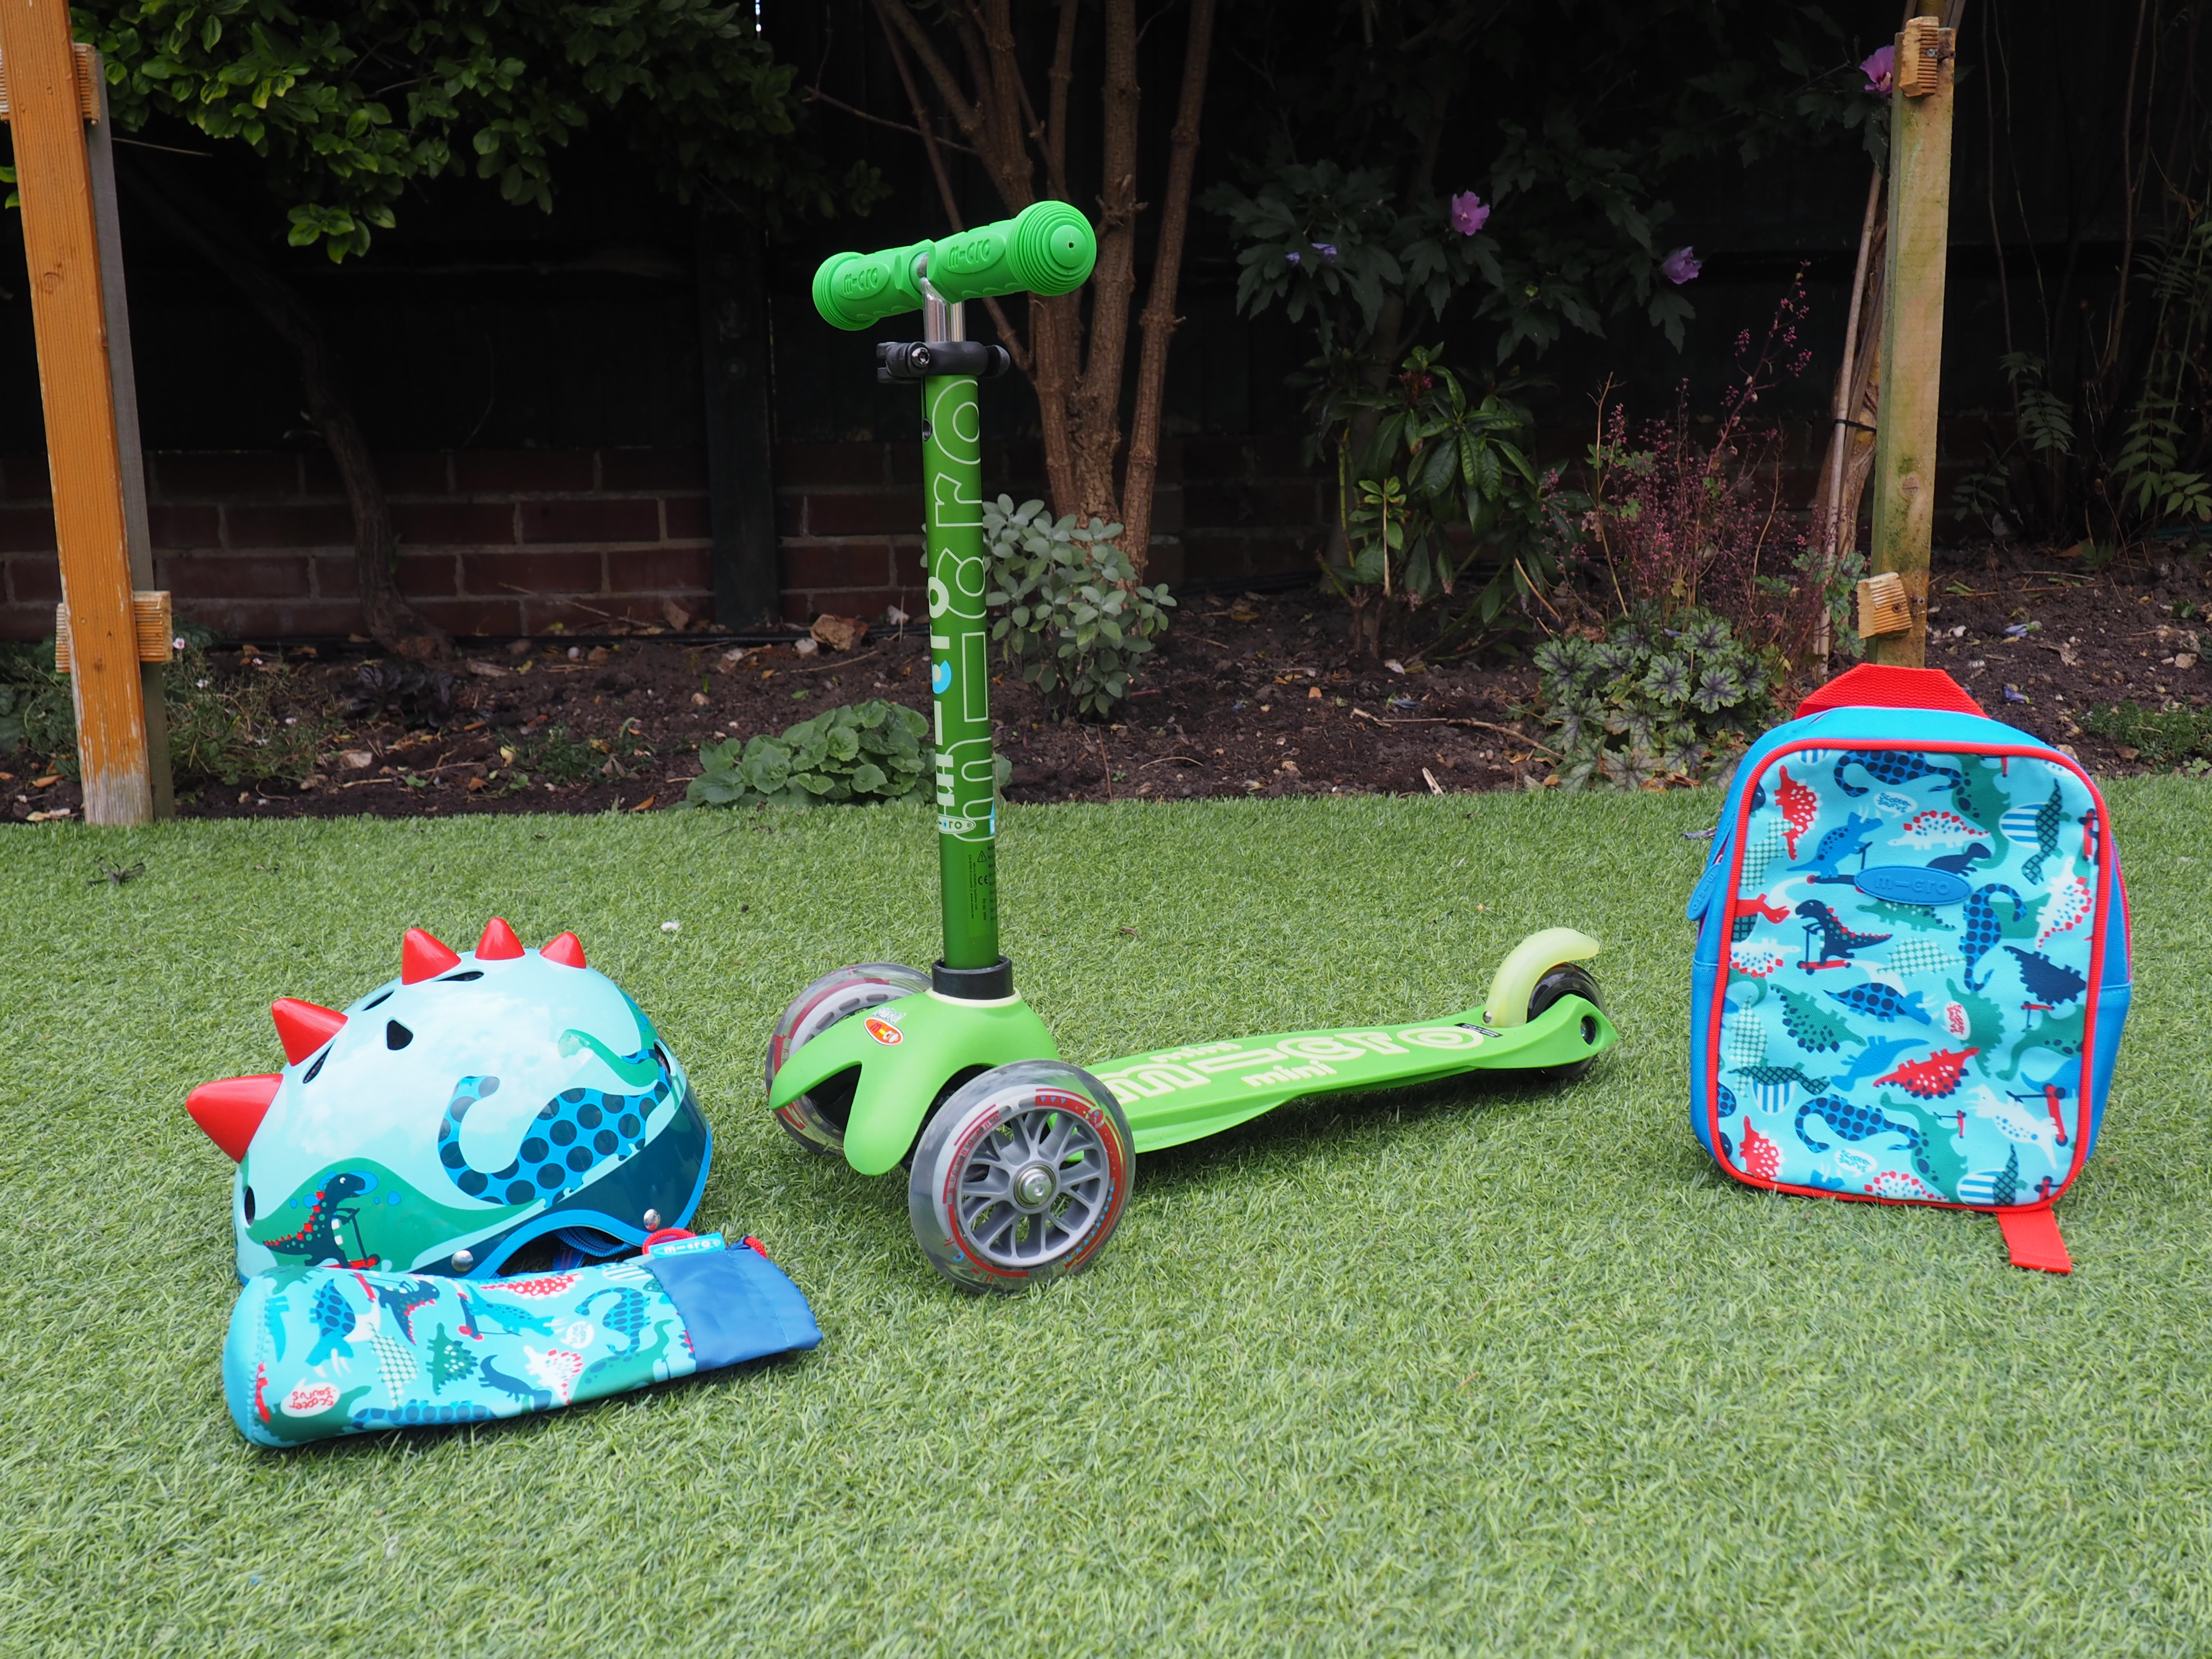 Green Mini Micro Duluxe scooter for 2 year old